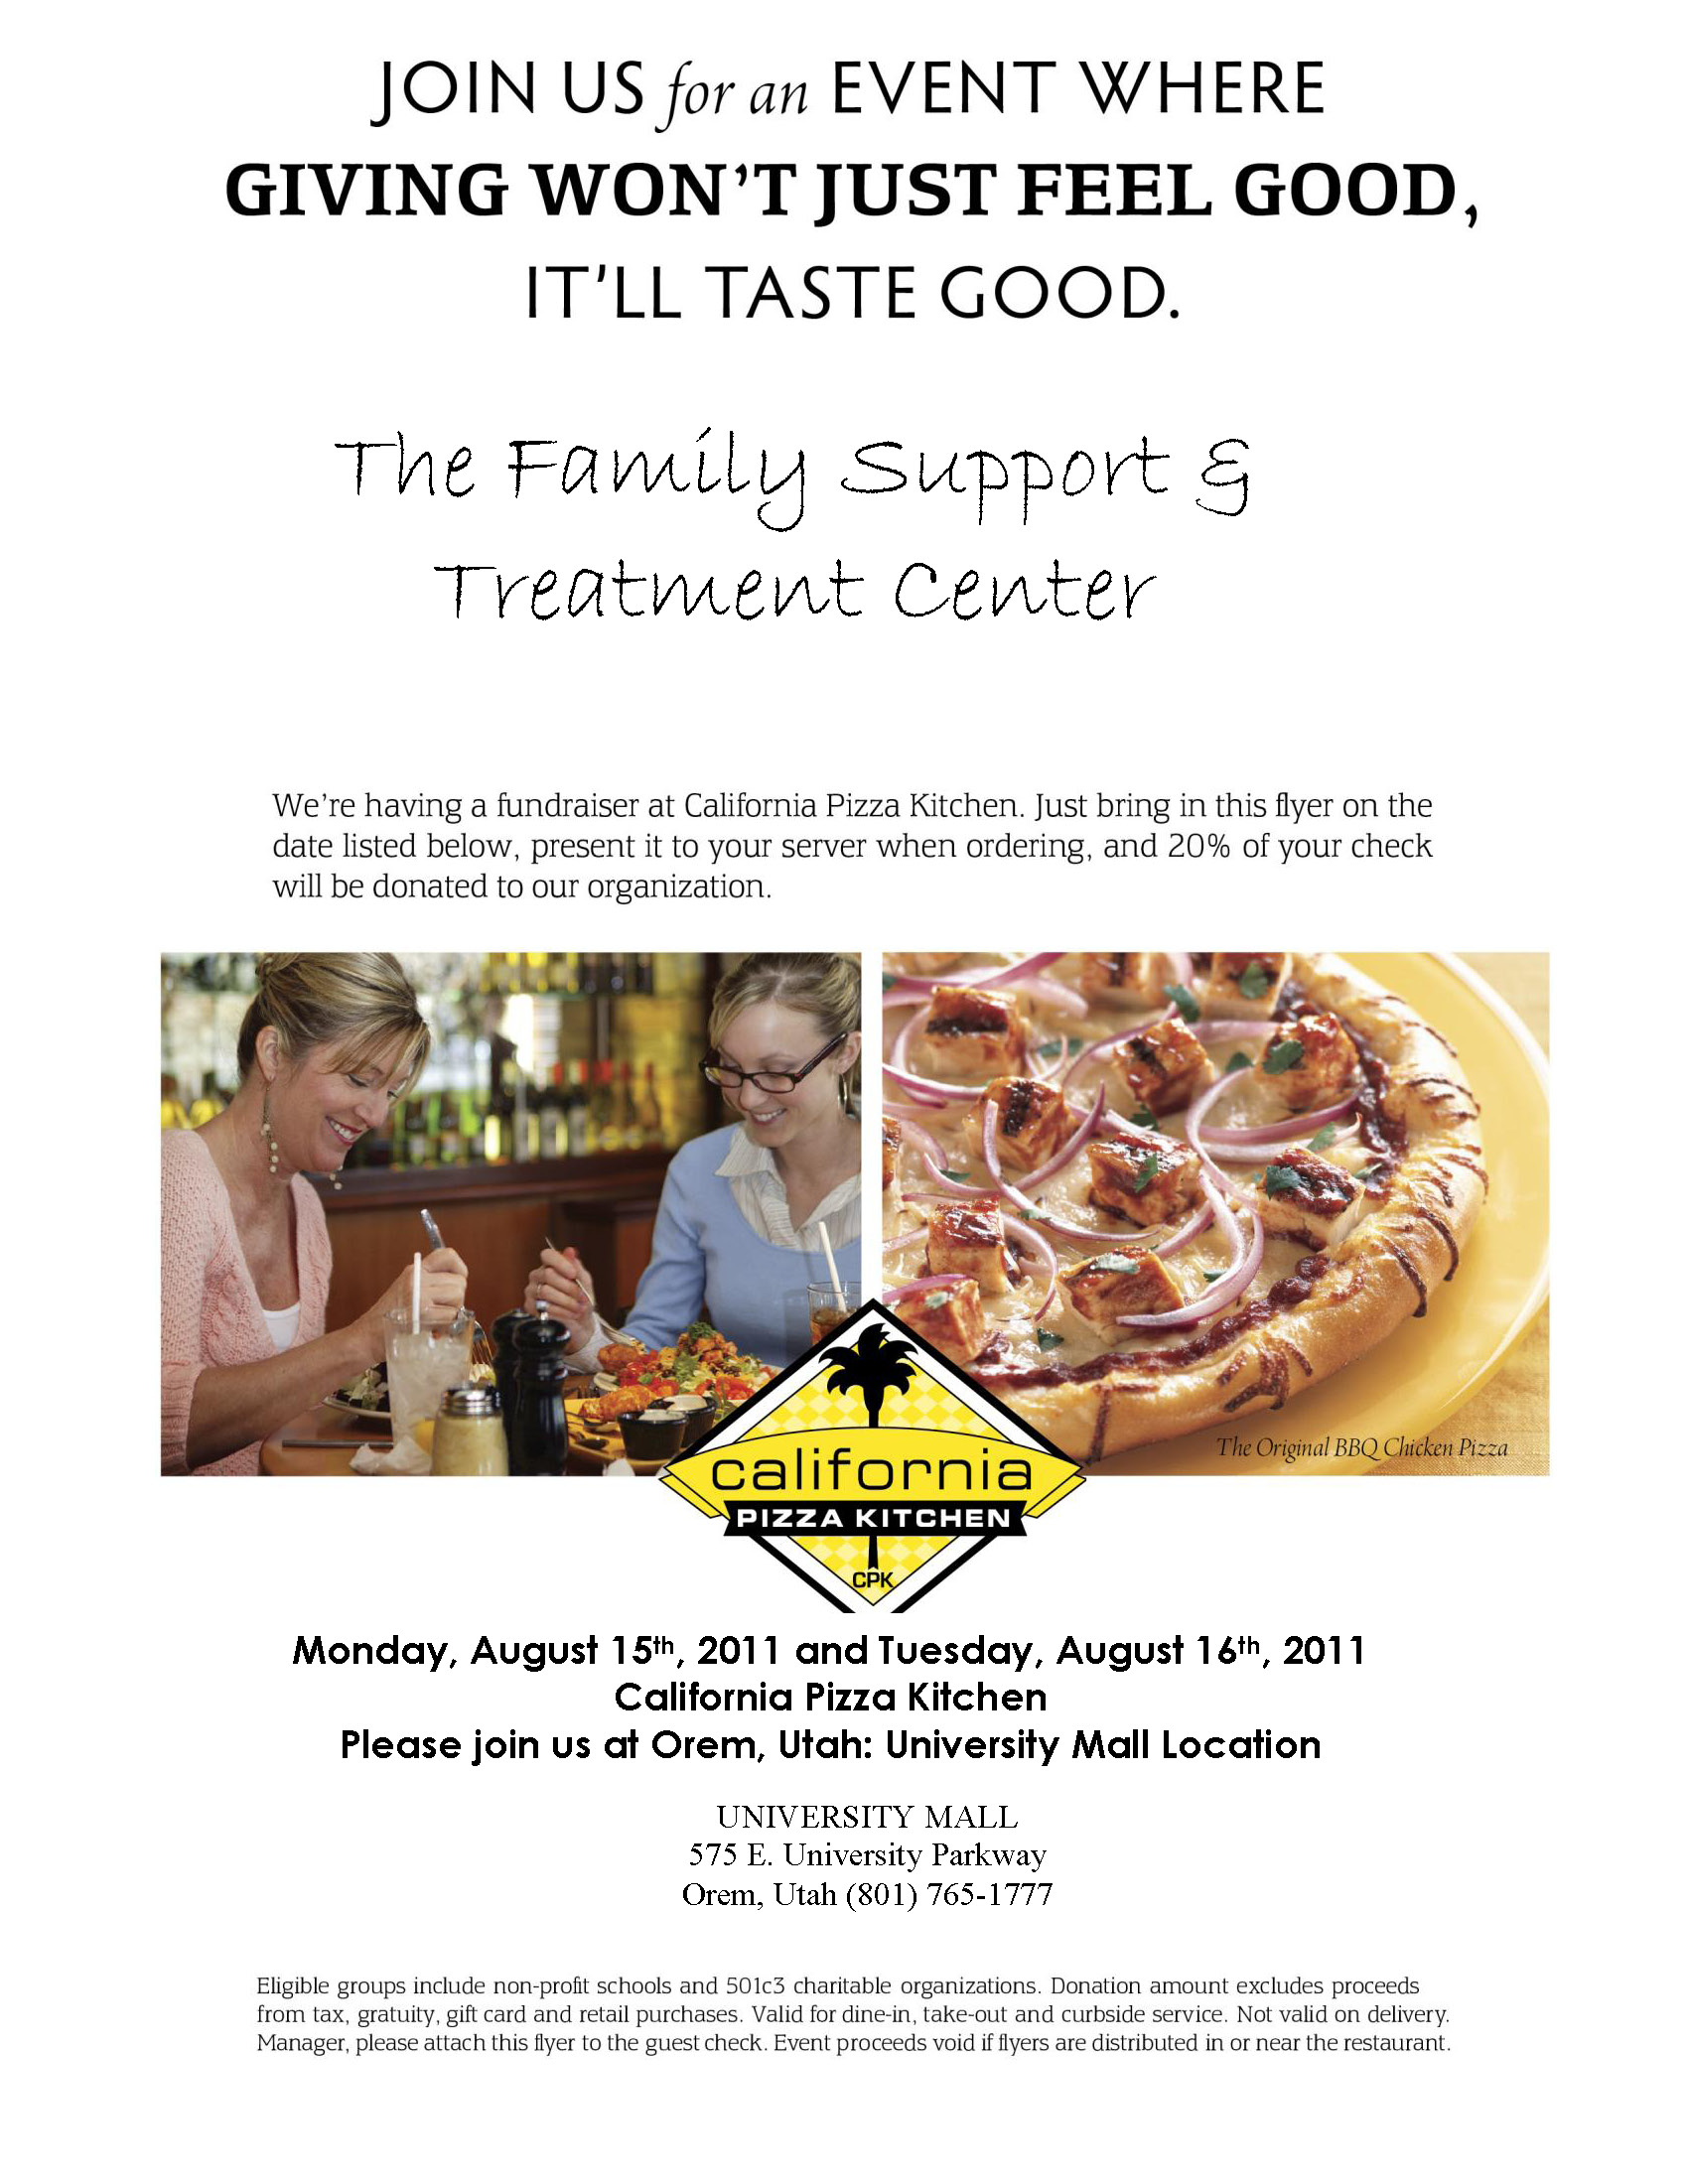 Support FSTC, California Pizza Kitchen, Orem • Utah Valley Moms